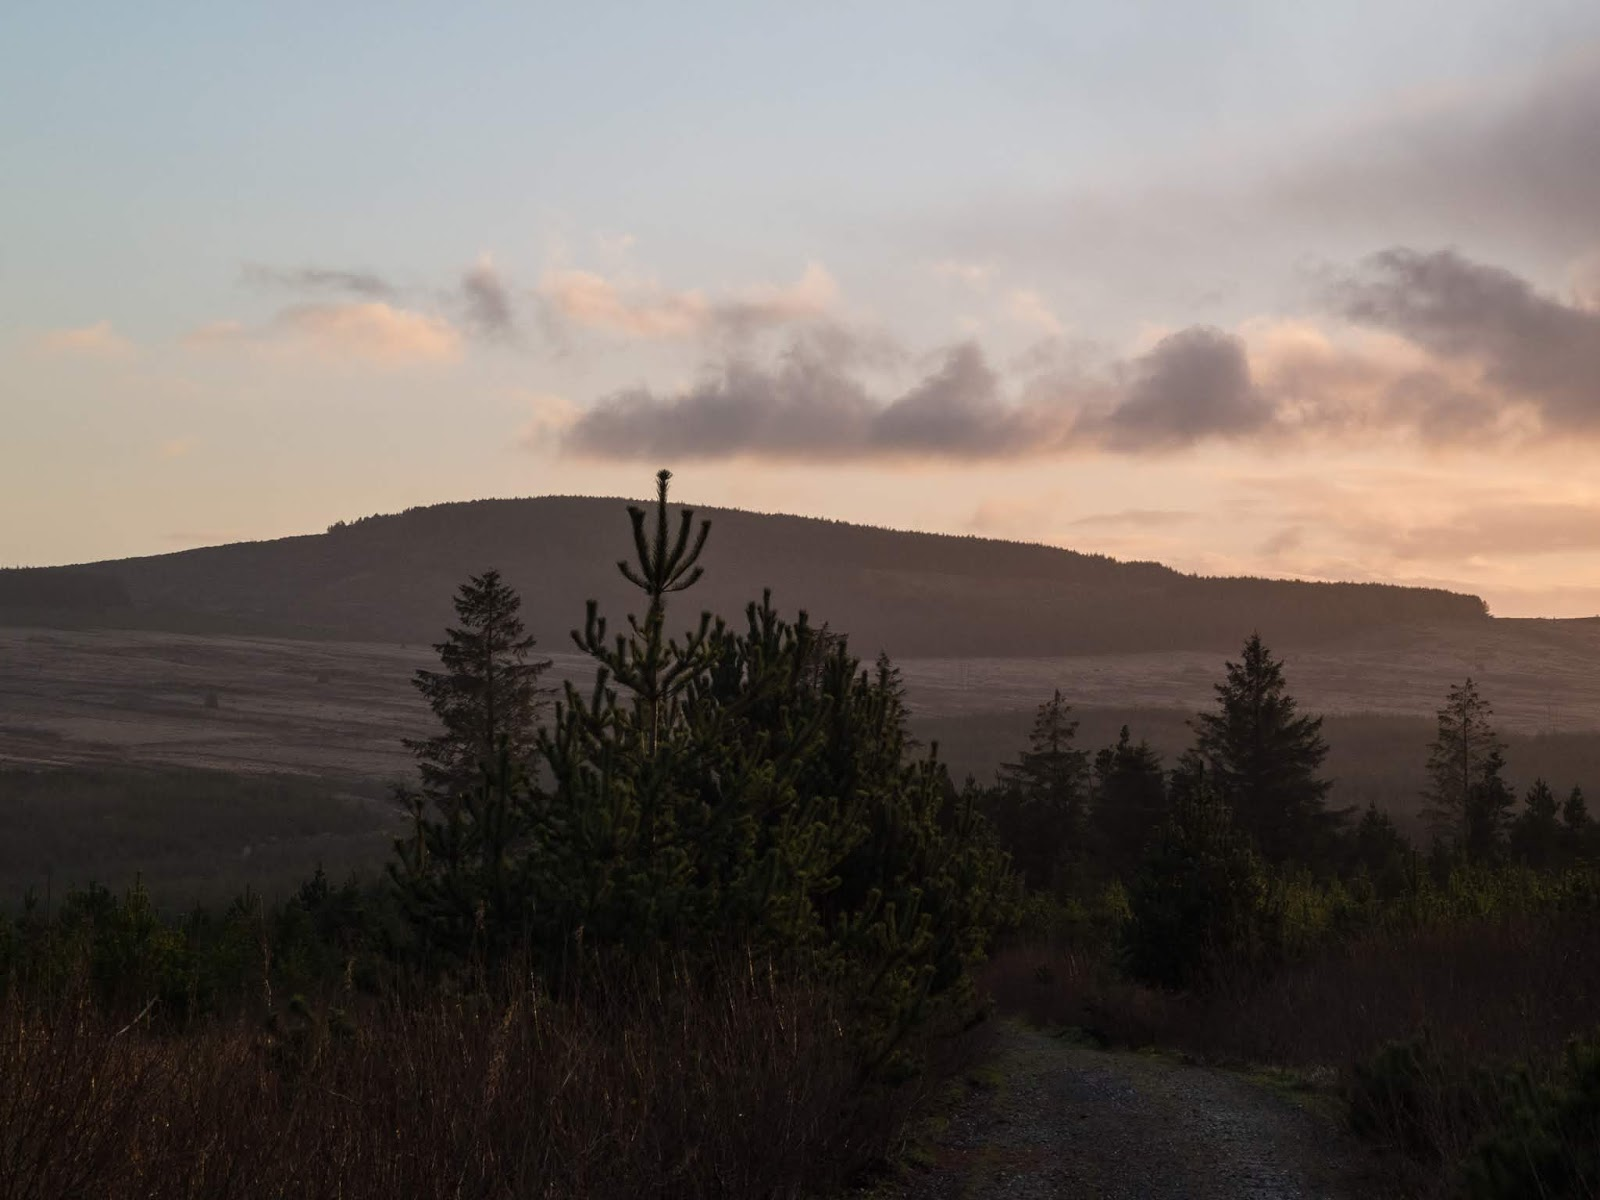 A path through young conifer trees in the Boggeragh Mountains during a sunset.